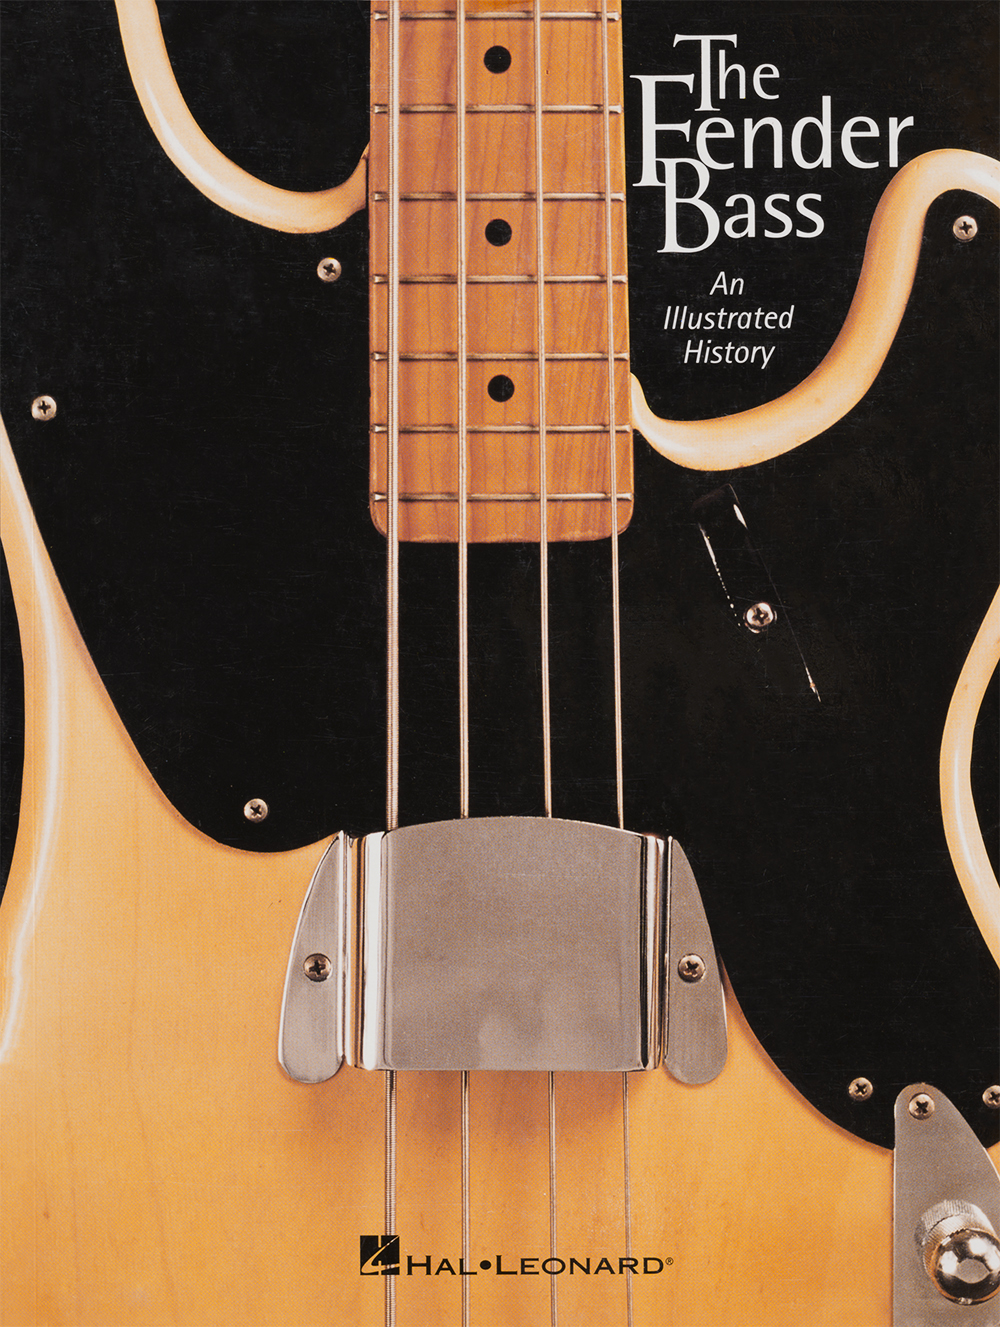 I co-authored the Fender Bass book with my friend, premiere guitar luthier J.W. Black, which was published in 2001